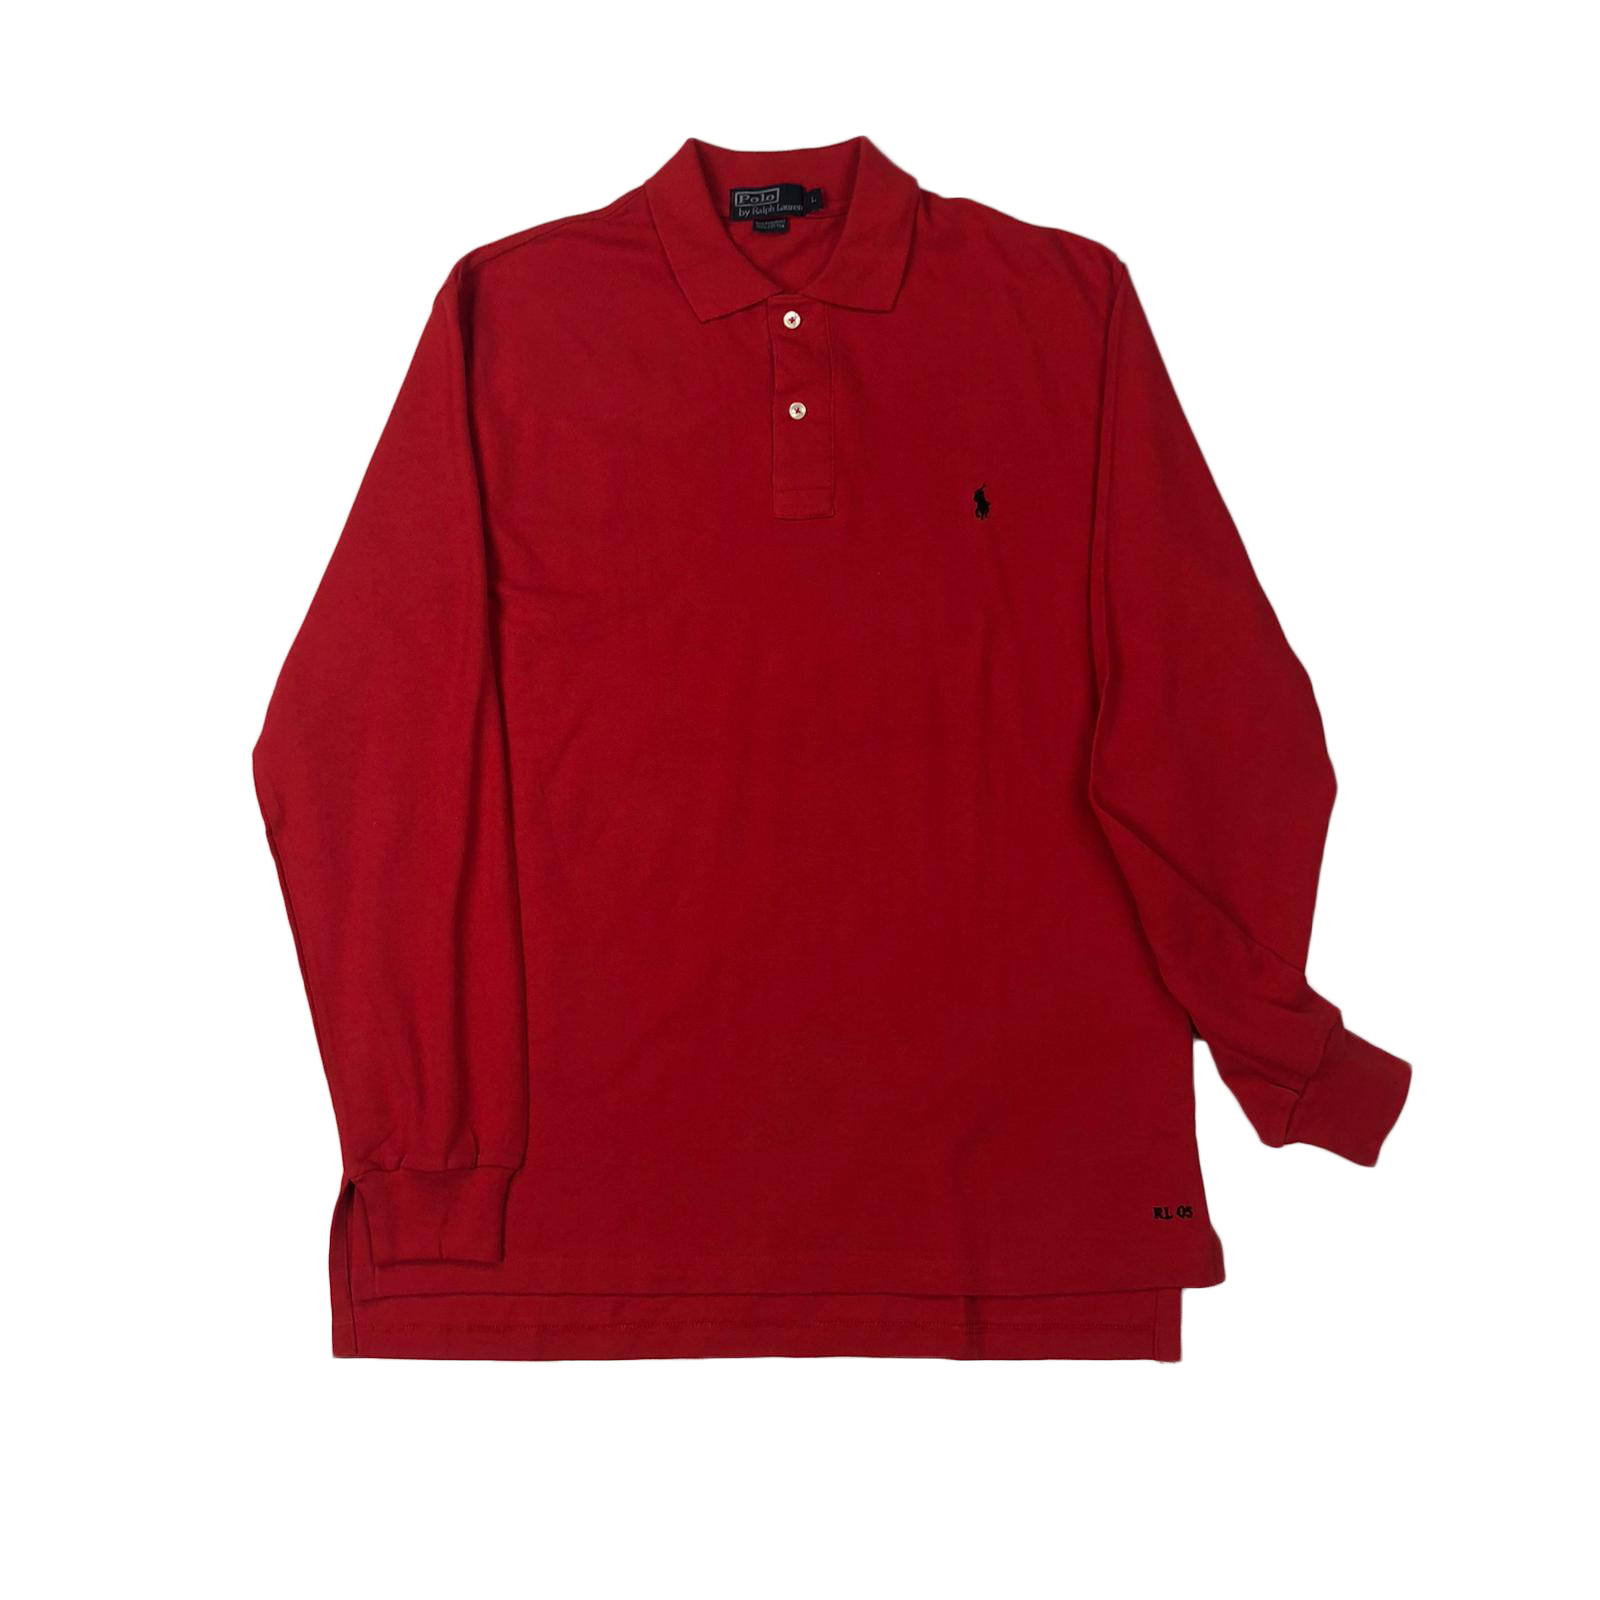 Ralph Lauren L/S polo shirt